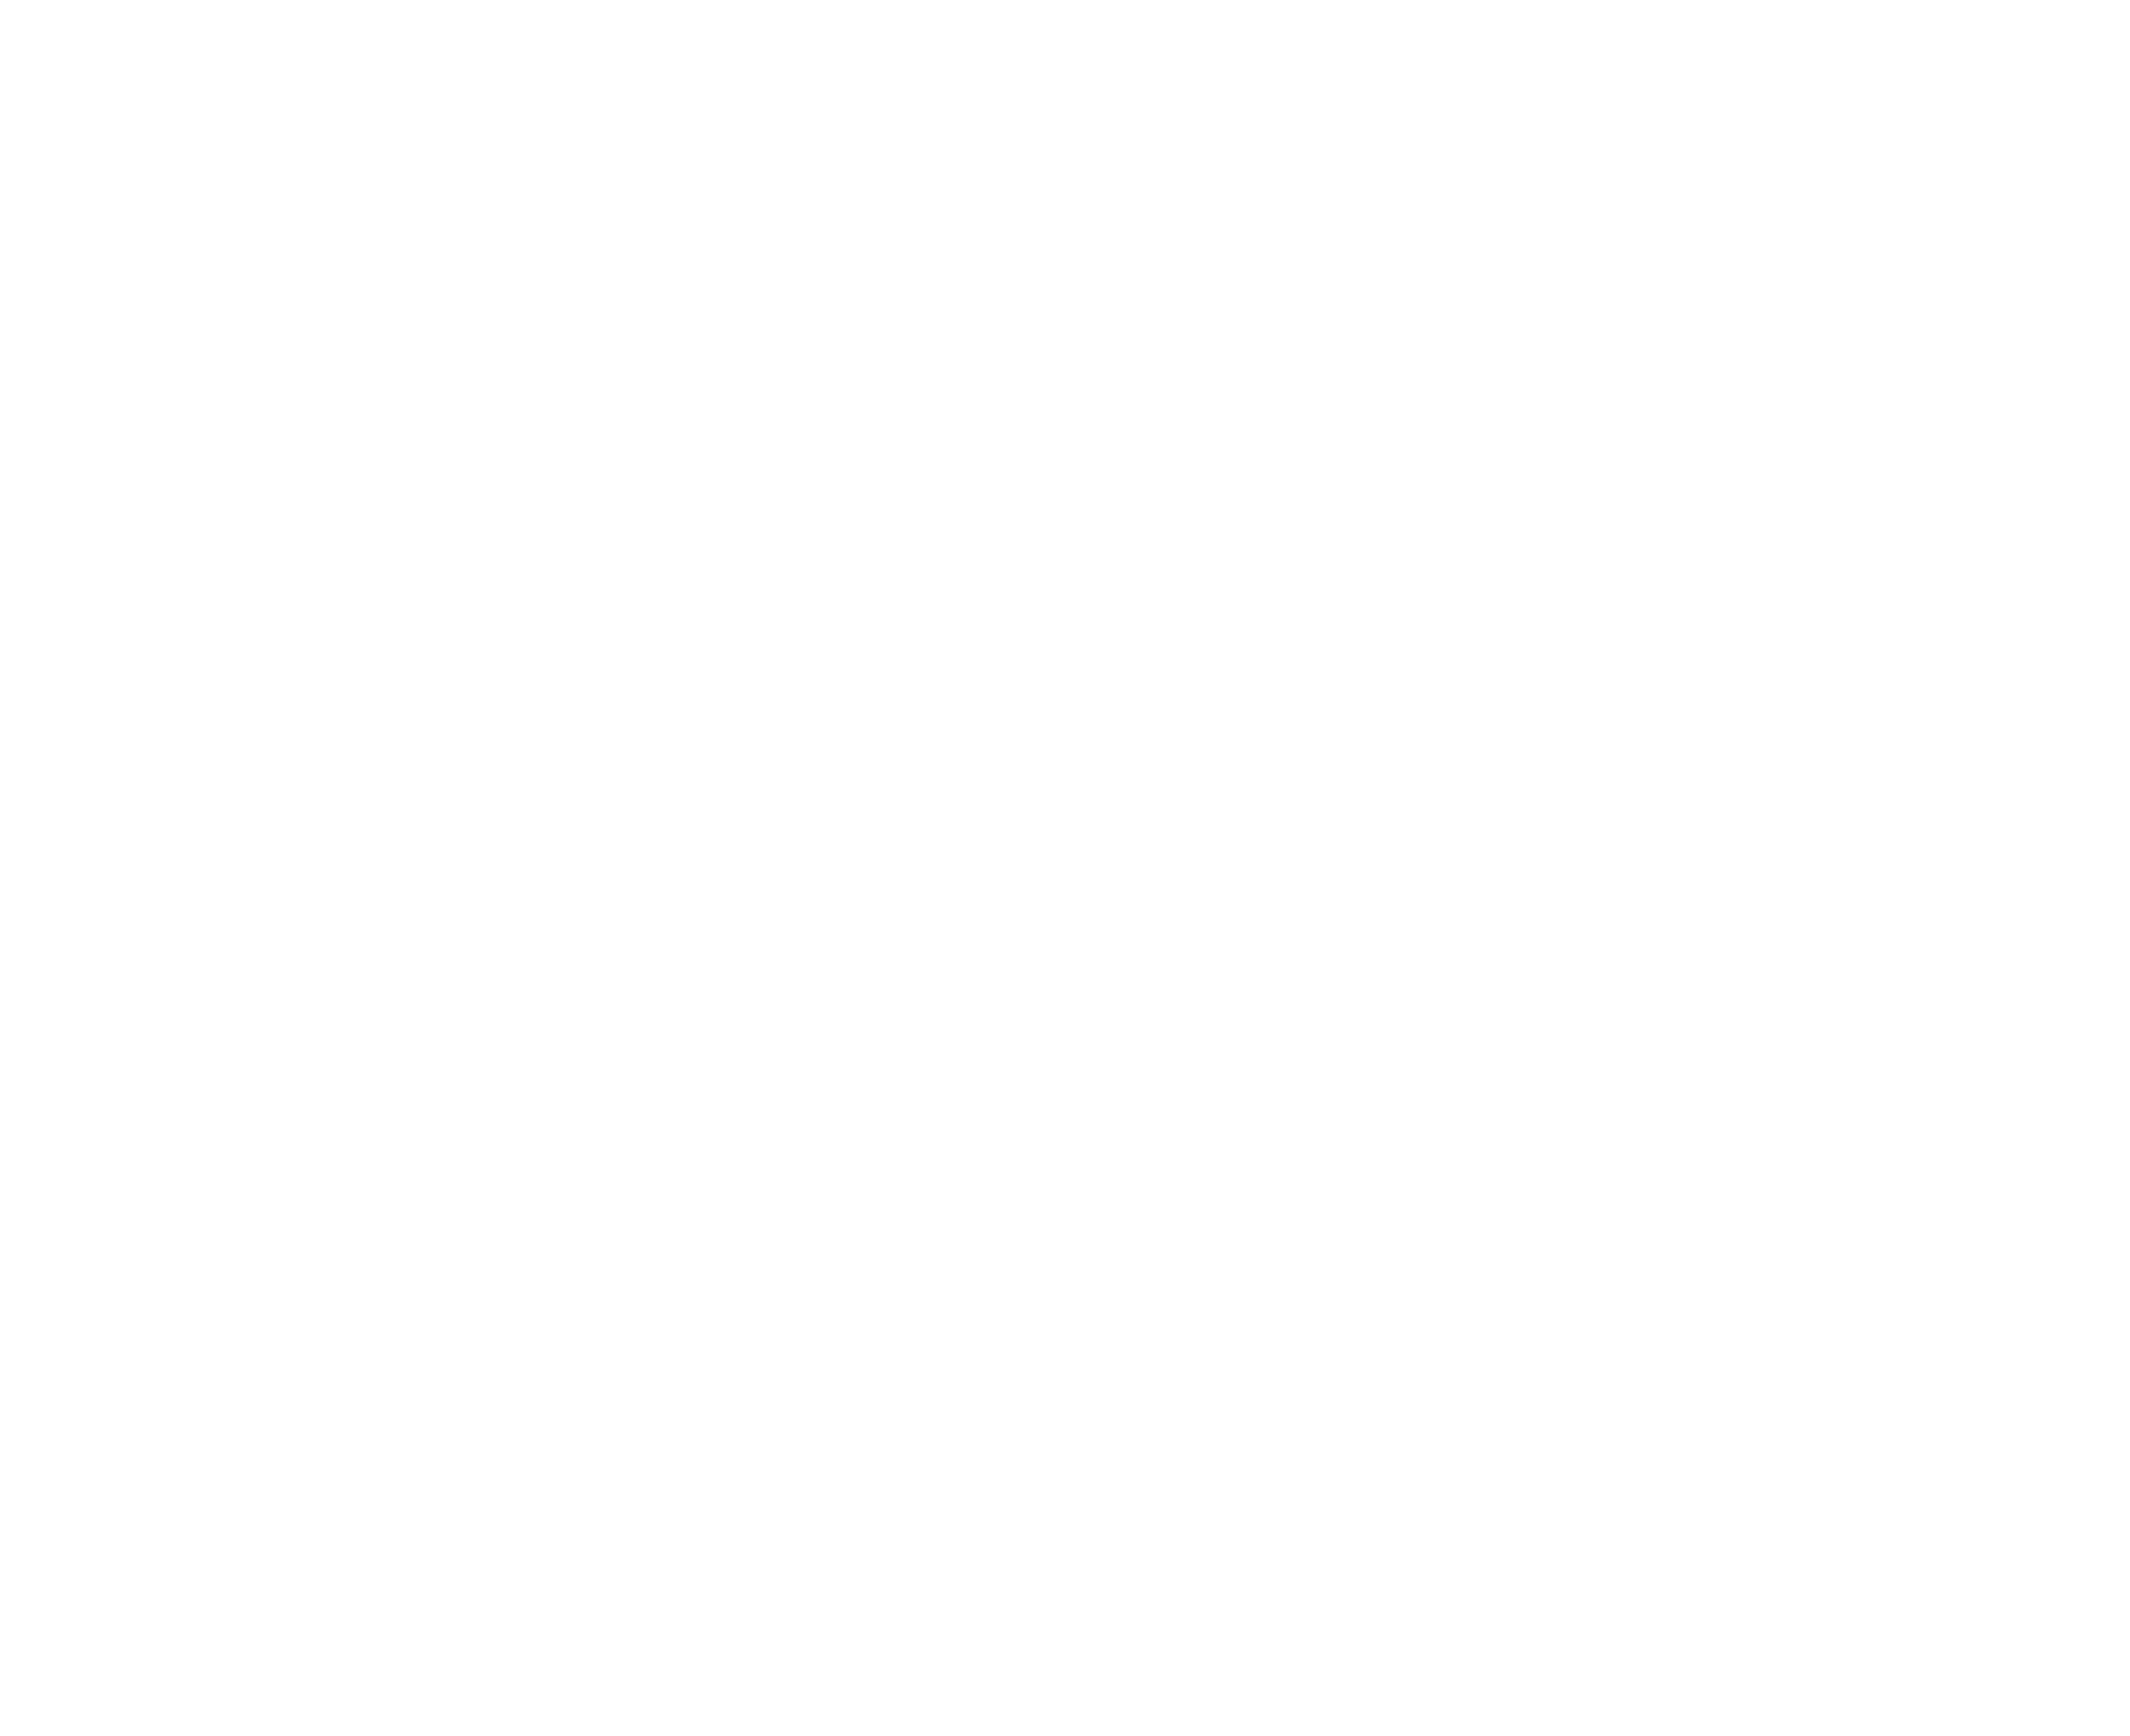 In-Sightful Living